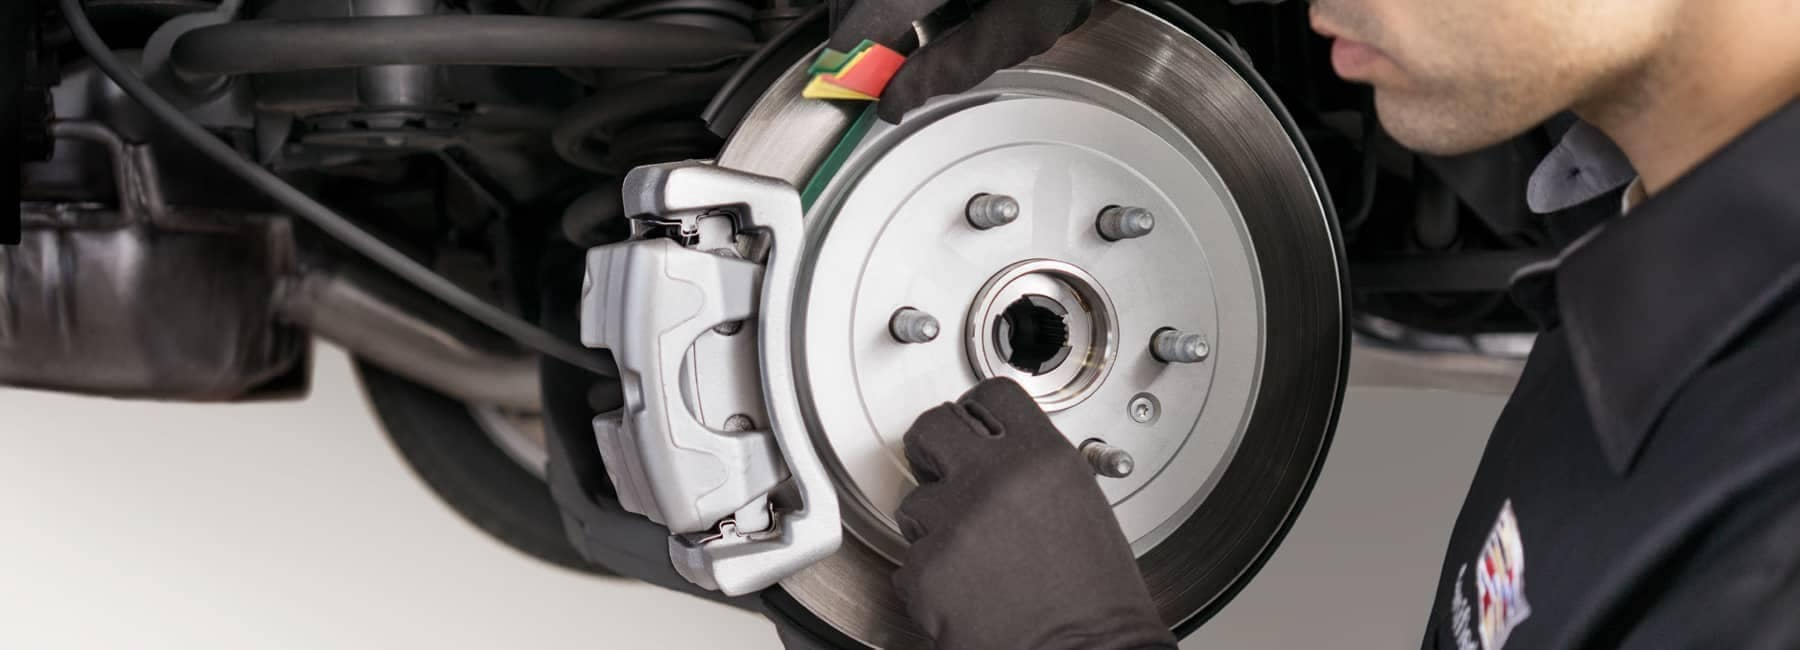 Cadillac service technician replaces rotors and brakes